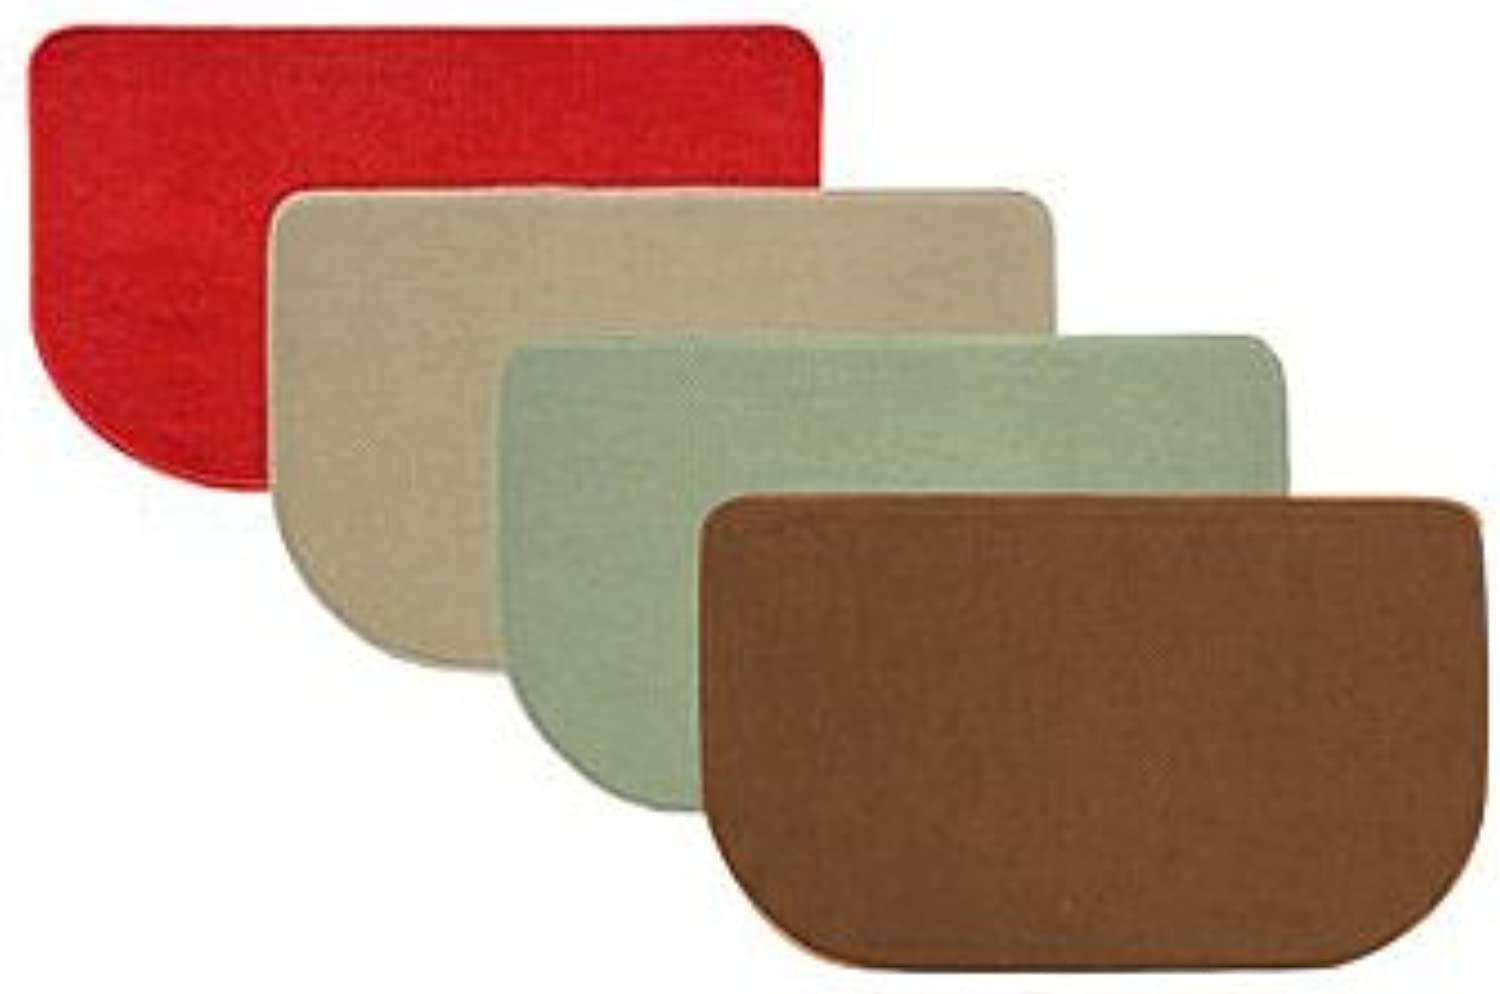 Bacova Guild 02475 Memory Foam Door Mat, 18-Inch by 30-Inch(Assorted)